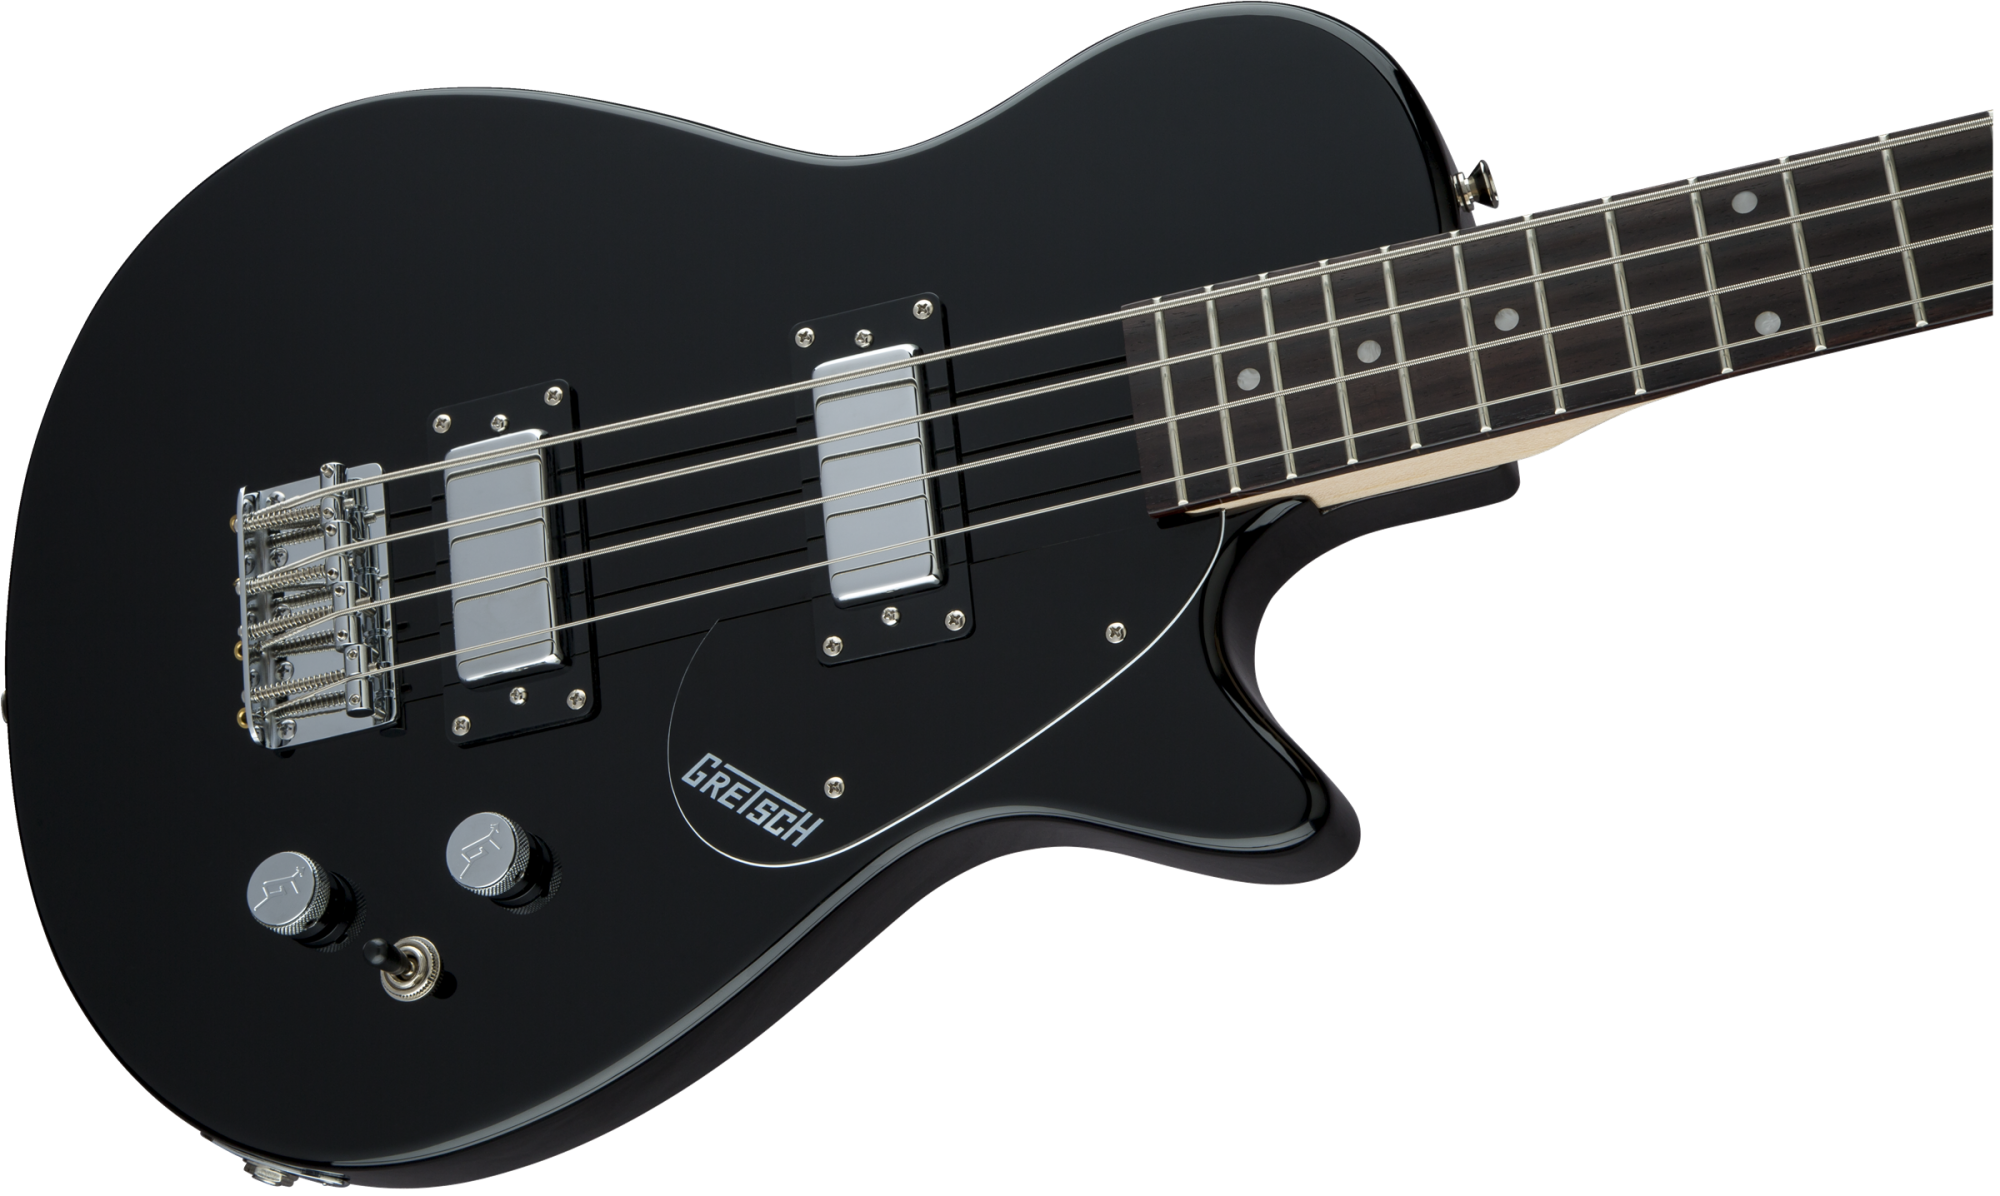 Gretsch G2220 Junior Jet Bass II 30.3 Scale - Black